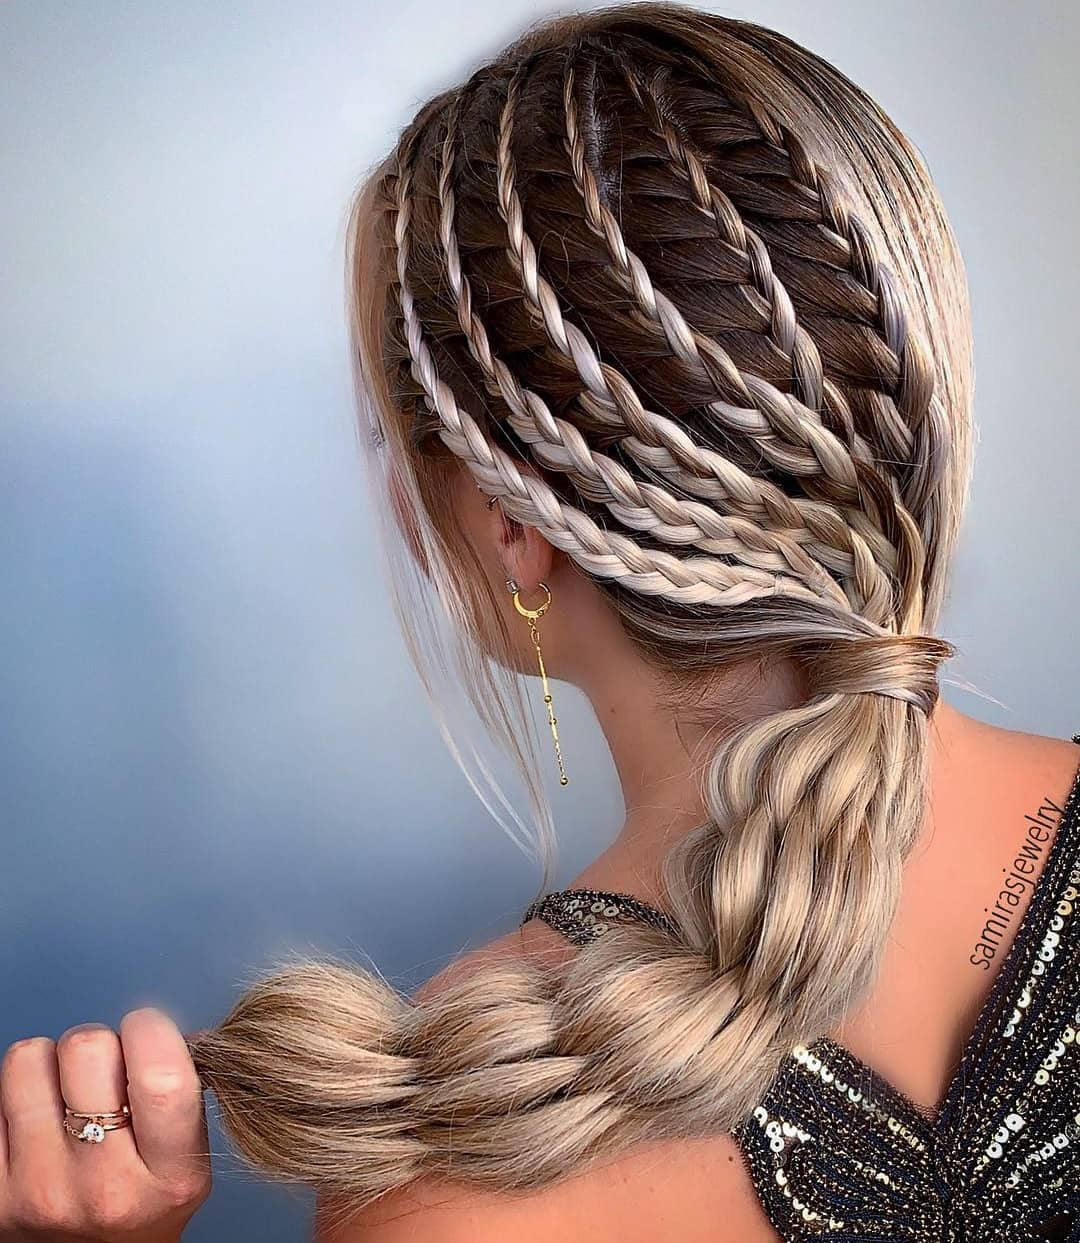 10 Amazing Braided Hairstyles For Long Hair 2020 Women